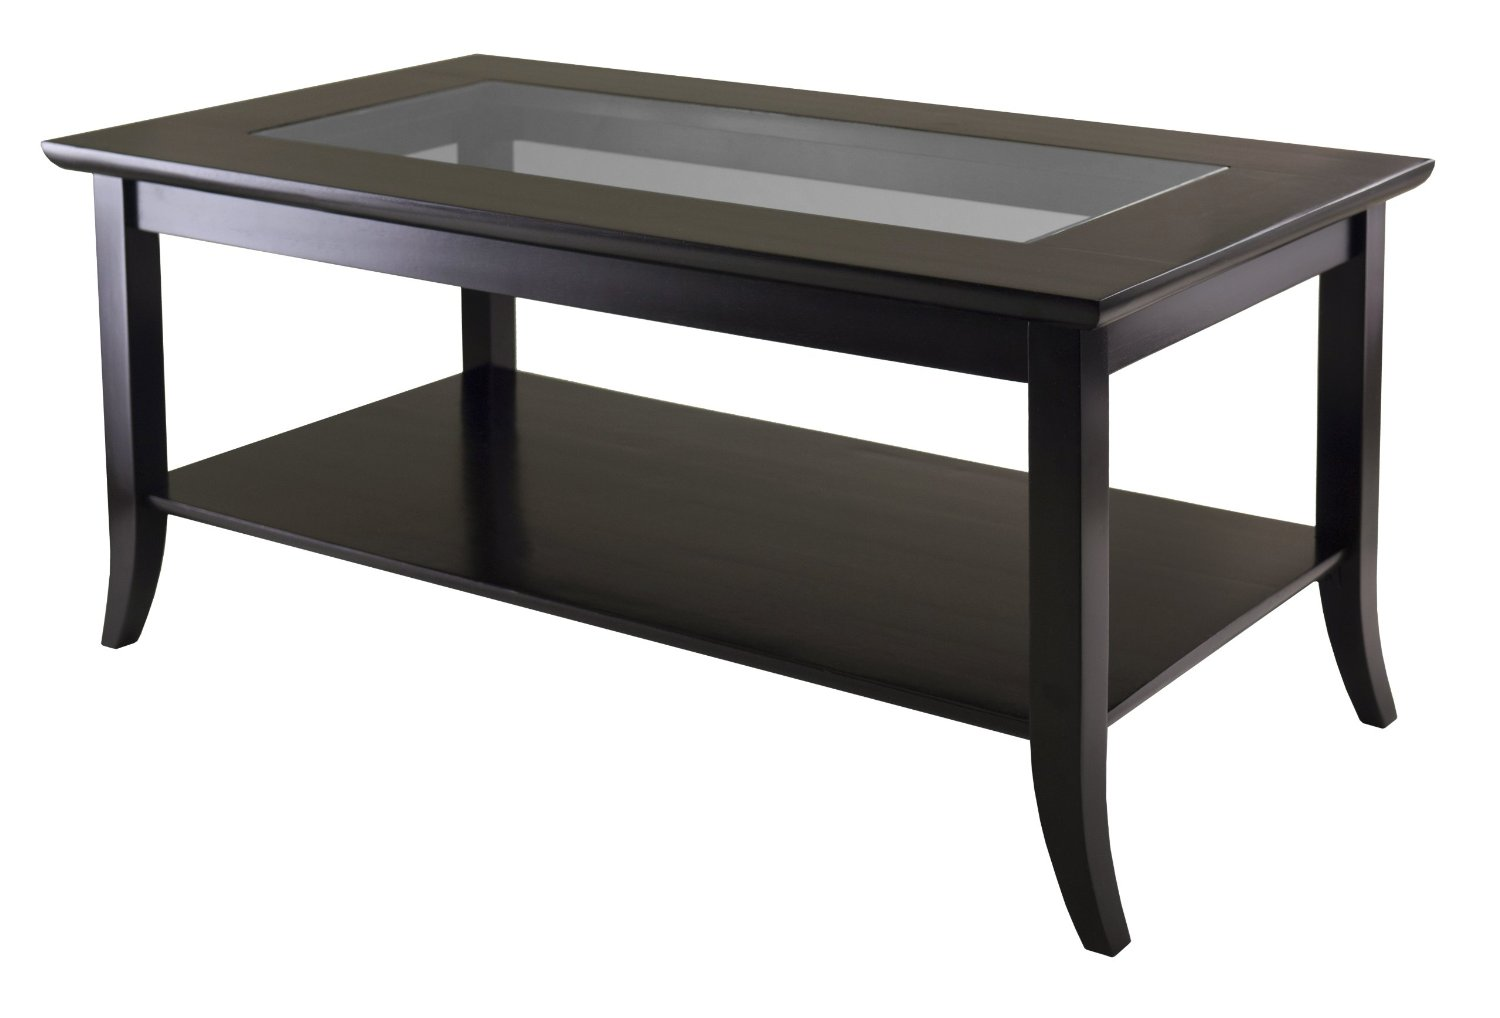 Details About Winsome Genoa Rectangular Coffee Table With Glass Top